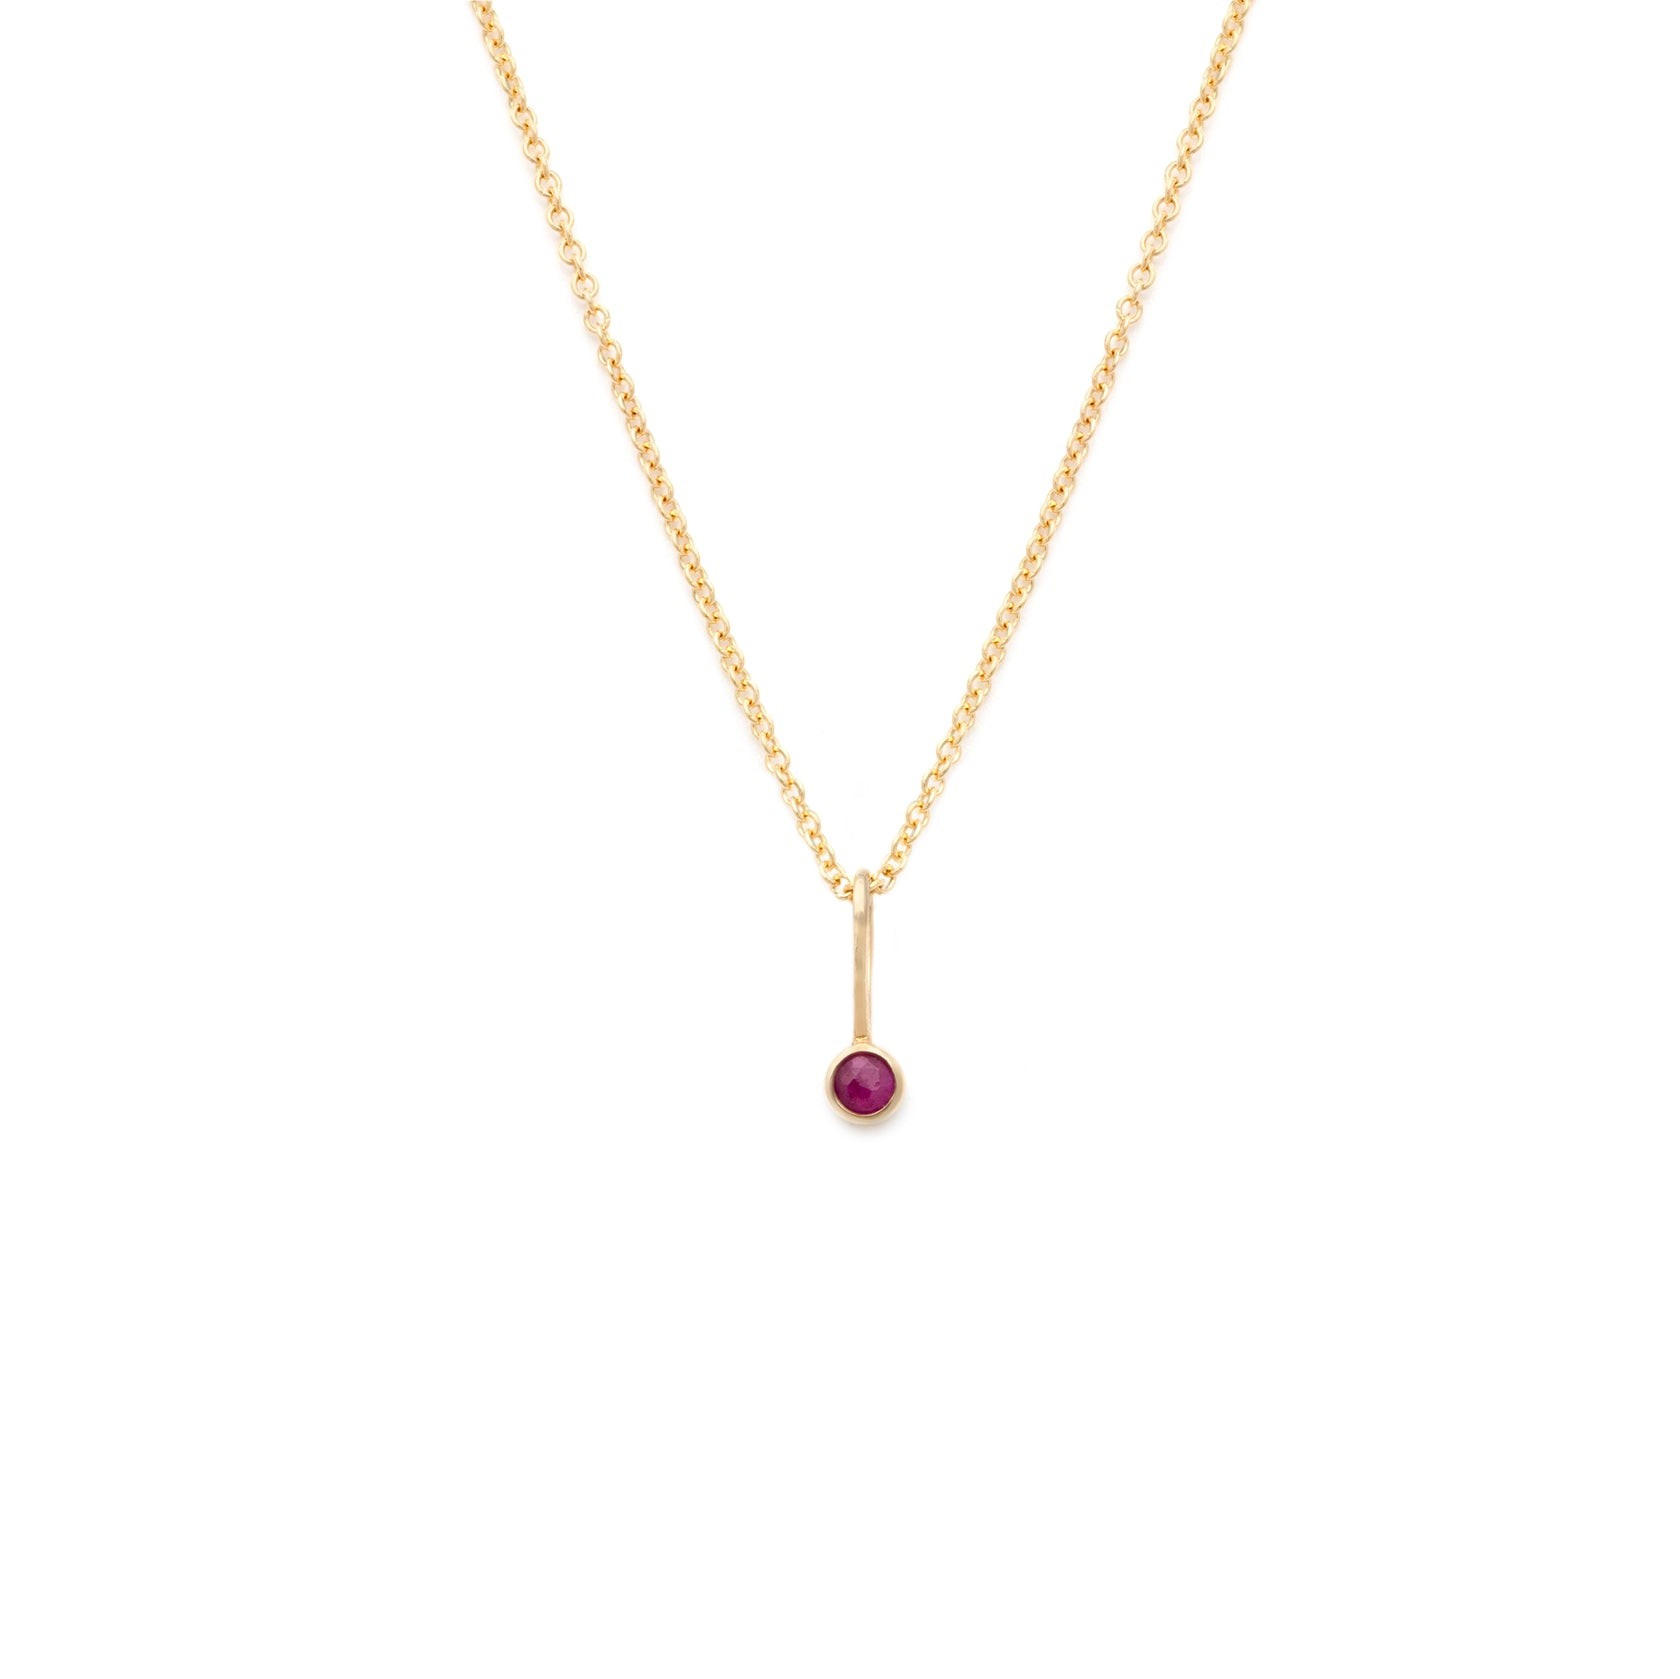 Coveted Ruby Pendant - 14k Solid Gold